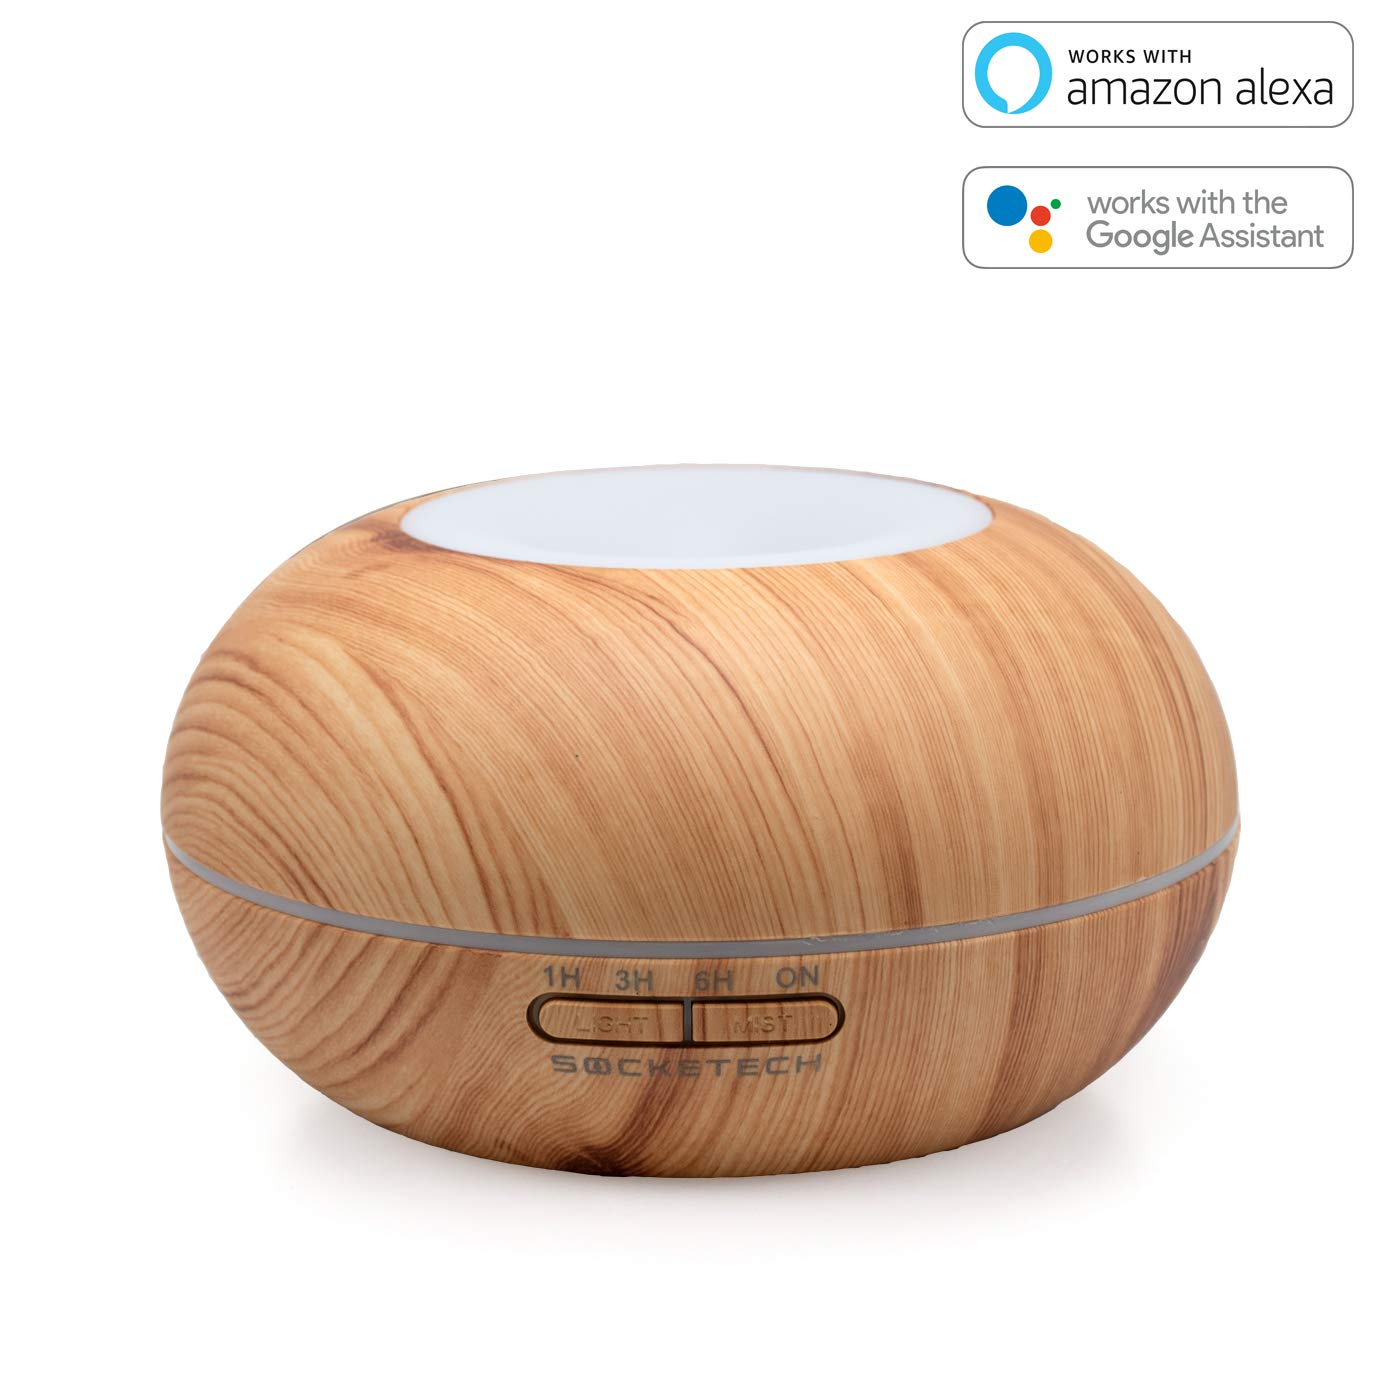 SOCKETECH ST18K 200ml Smart Wireless Essential Oil Aromatherapy Diffuser - Works with Alexa&Google Home